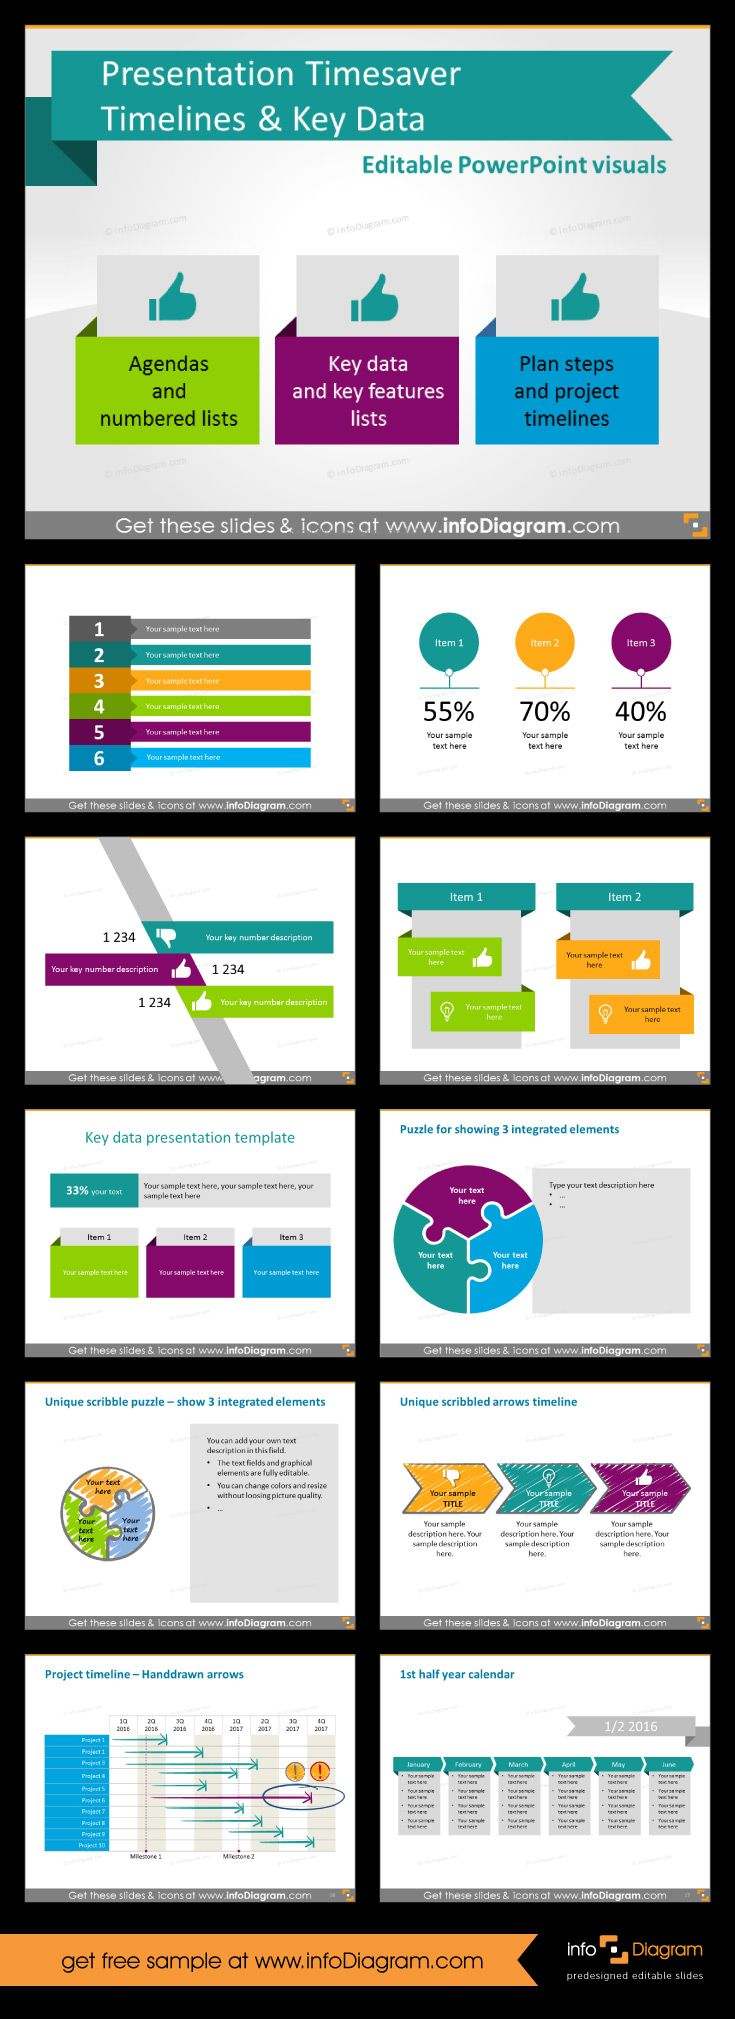 45 best business powerpoint templates images on pinterest time saver graphics for business presentations make quickly an agenda show key numbers ppt templateswot toneelgroepblik Image collections